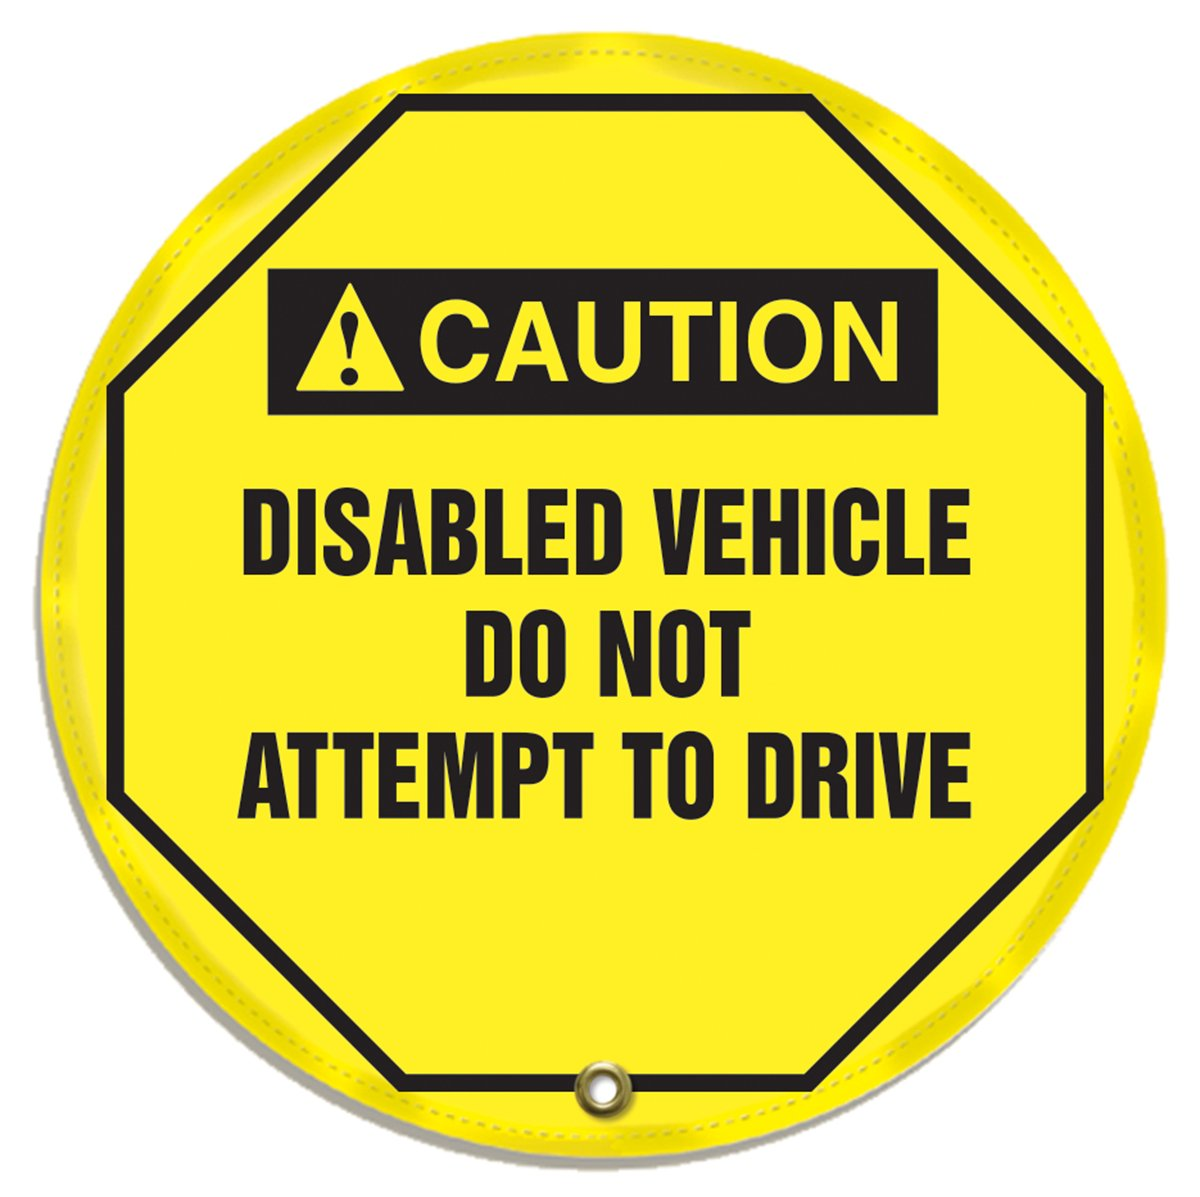 Black on Yellow ANSI-Style LegendCAUTION DISABLED VEHICLE DO NOT ATTEMPT TO DRIVE 24 Diameter Accuform Signs ANSI-Style LegendCAUTION DISABLED VEHICLE DO NOT ATTEMPT TO DRIVE 24 Diameter Accuform KDD739 STOPOUT Vinyl Steering Wheel Message Cover